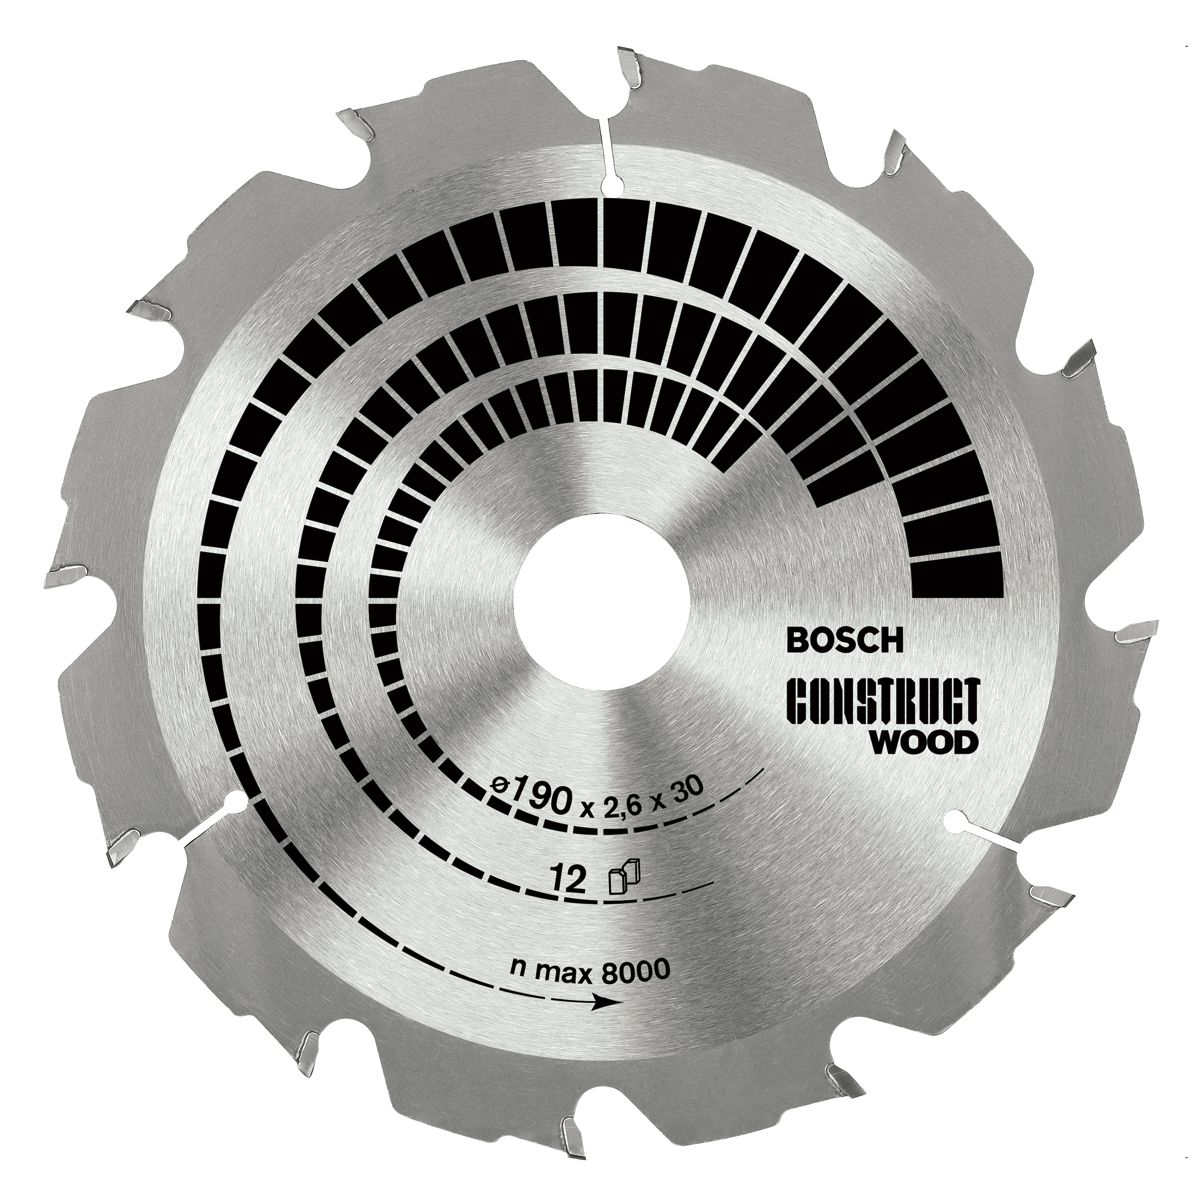 Bosch 2608640630 Construct Wood Circular Saw Blade 160mm X 20mm 12 Teeth Circular Saw Blades Table Saw Blades Saw Blade